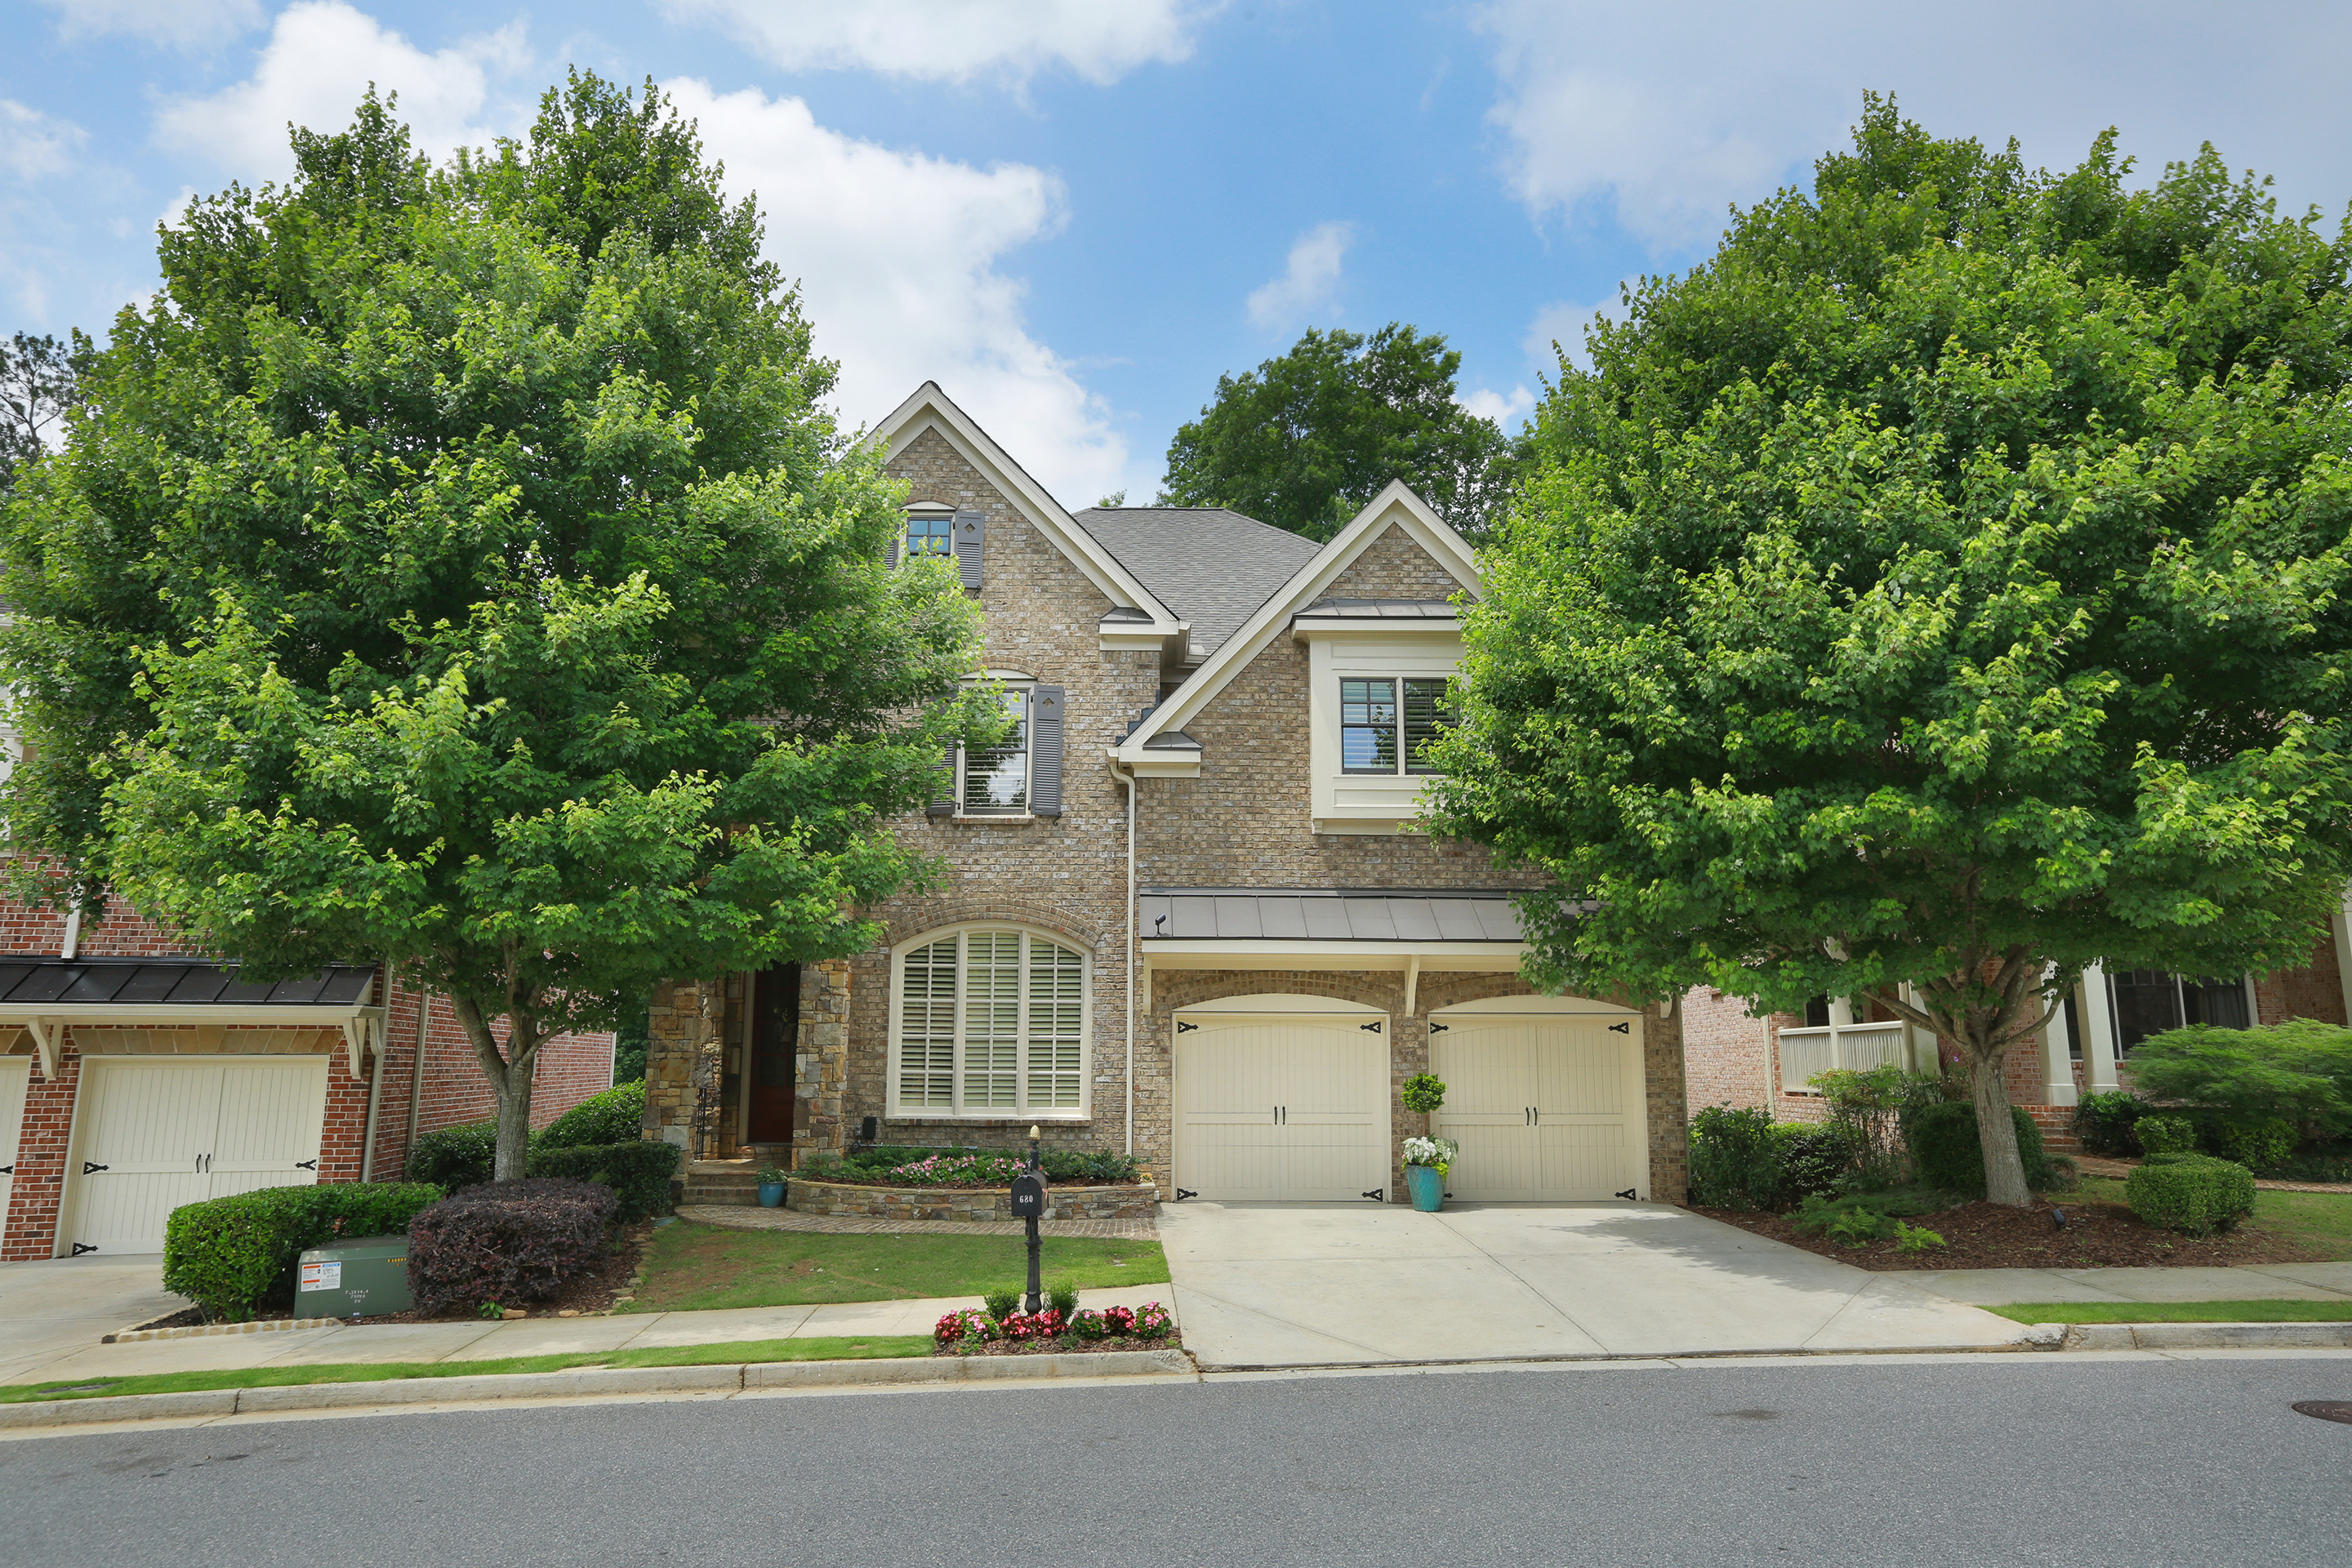 Property For Sale at Immaculate Home Overlooks Alpharetta's Greenway